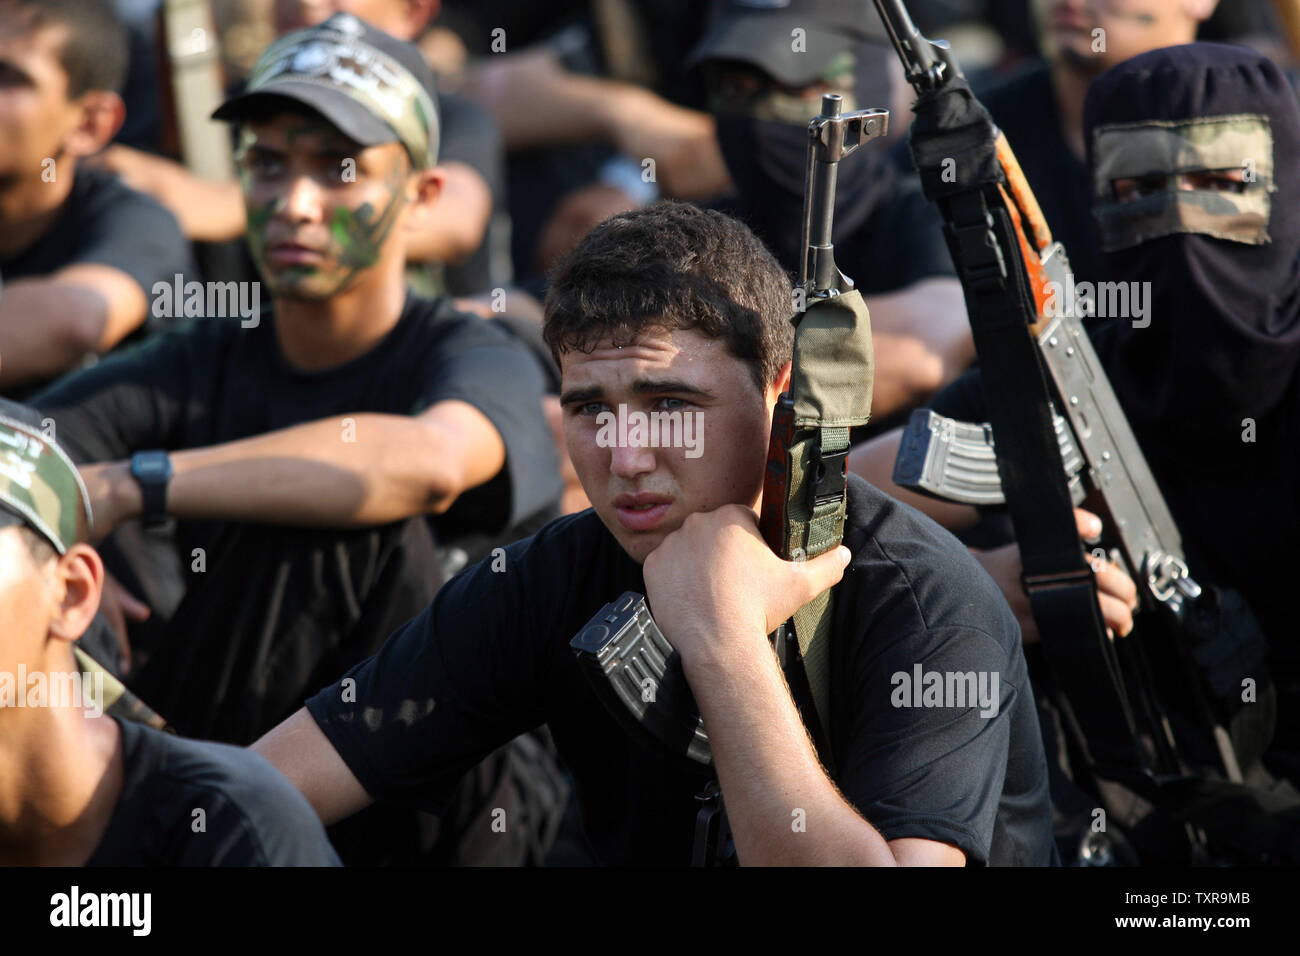 Young Palestinians  during a military-style exercise at the Liberation Youths summer camp organised by the Hamas movement, in Khan younis in the southern Gaza Strip August 5, 2015. Hamas stages dozens of military-style summer camps for young Palestinians in the Gaza Strip to prepare them to 'confront any possible Israeli attack', organisers from Hamas said. Photo by Ismael Mohamad/UPI - Stock Image